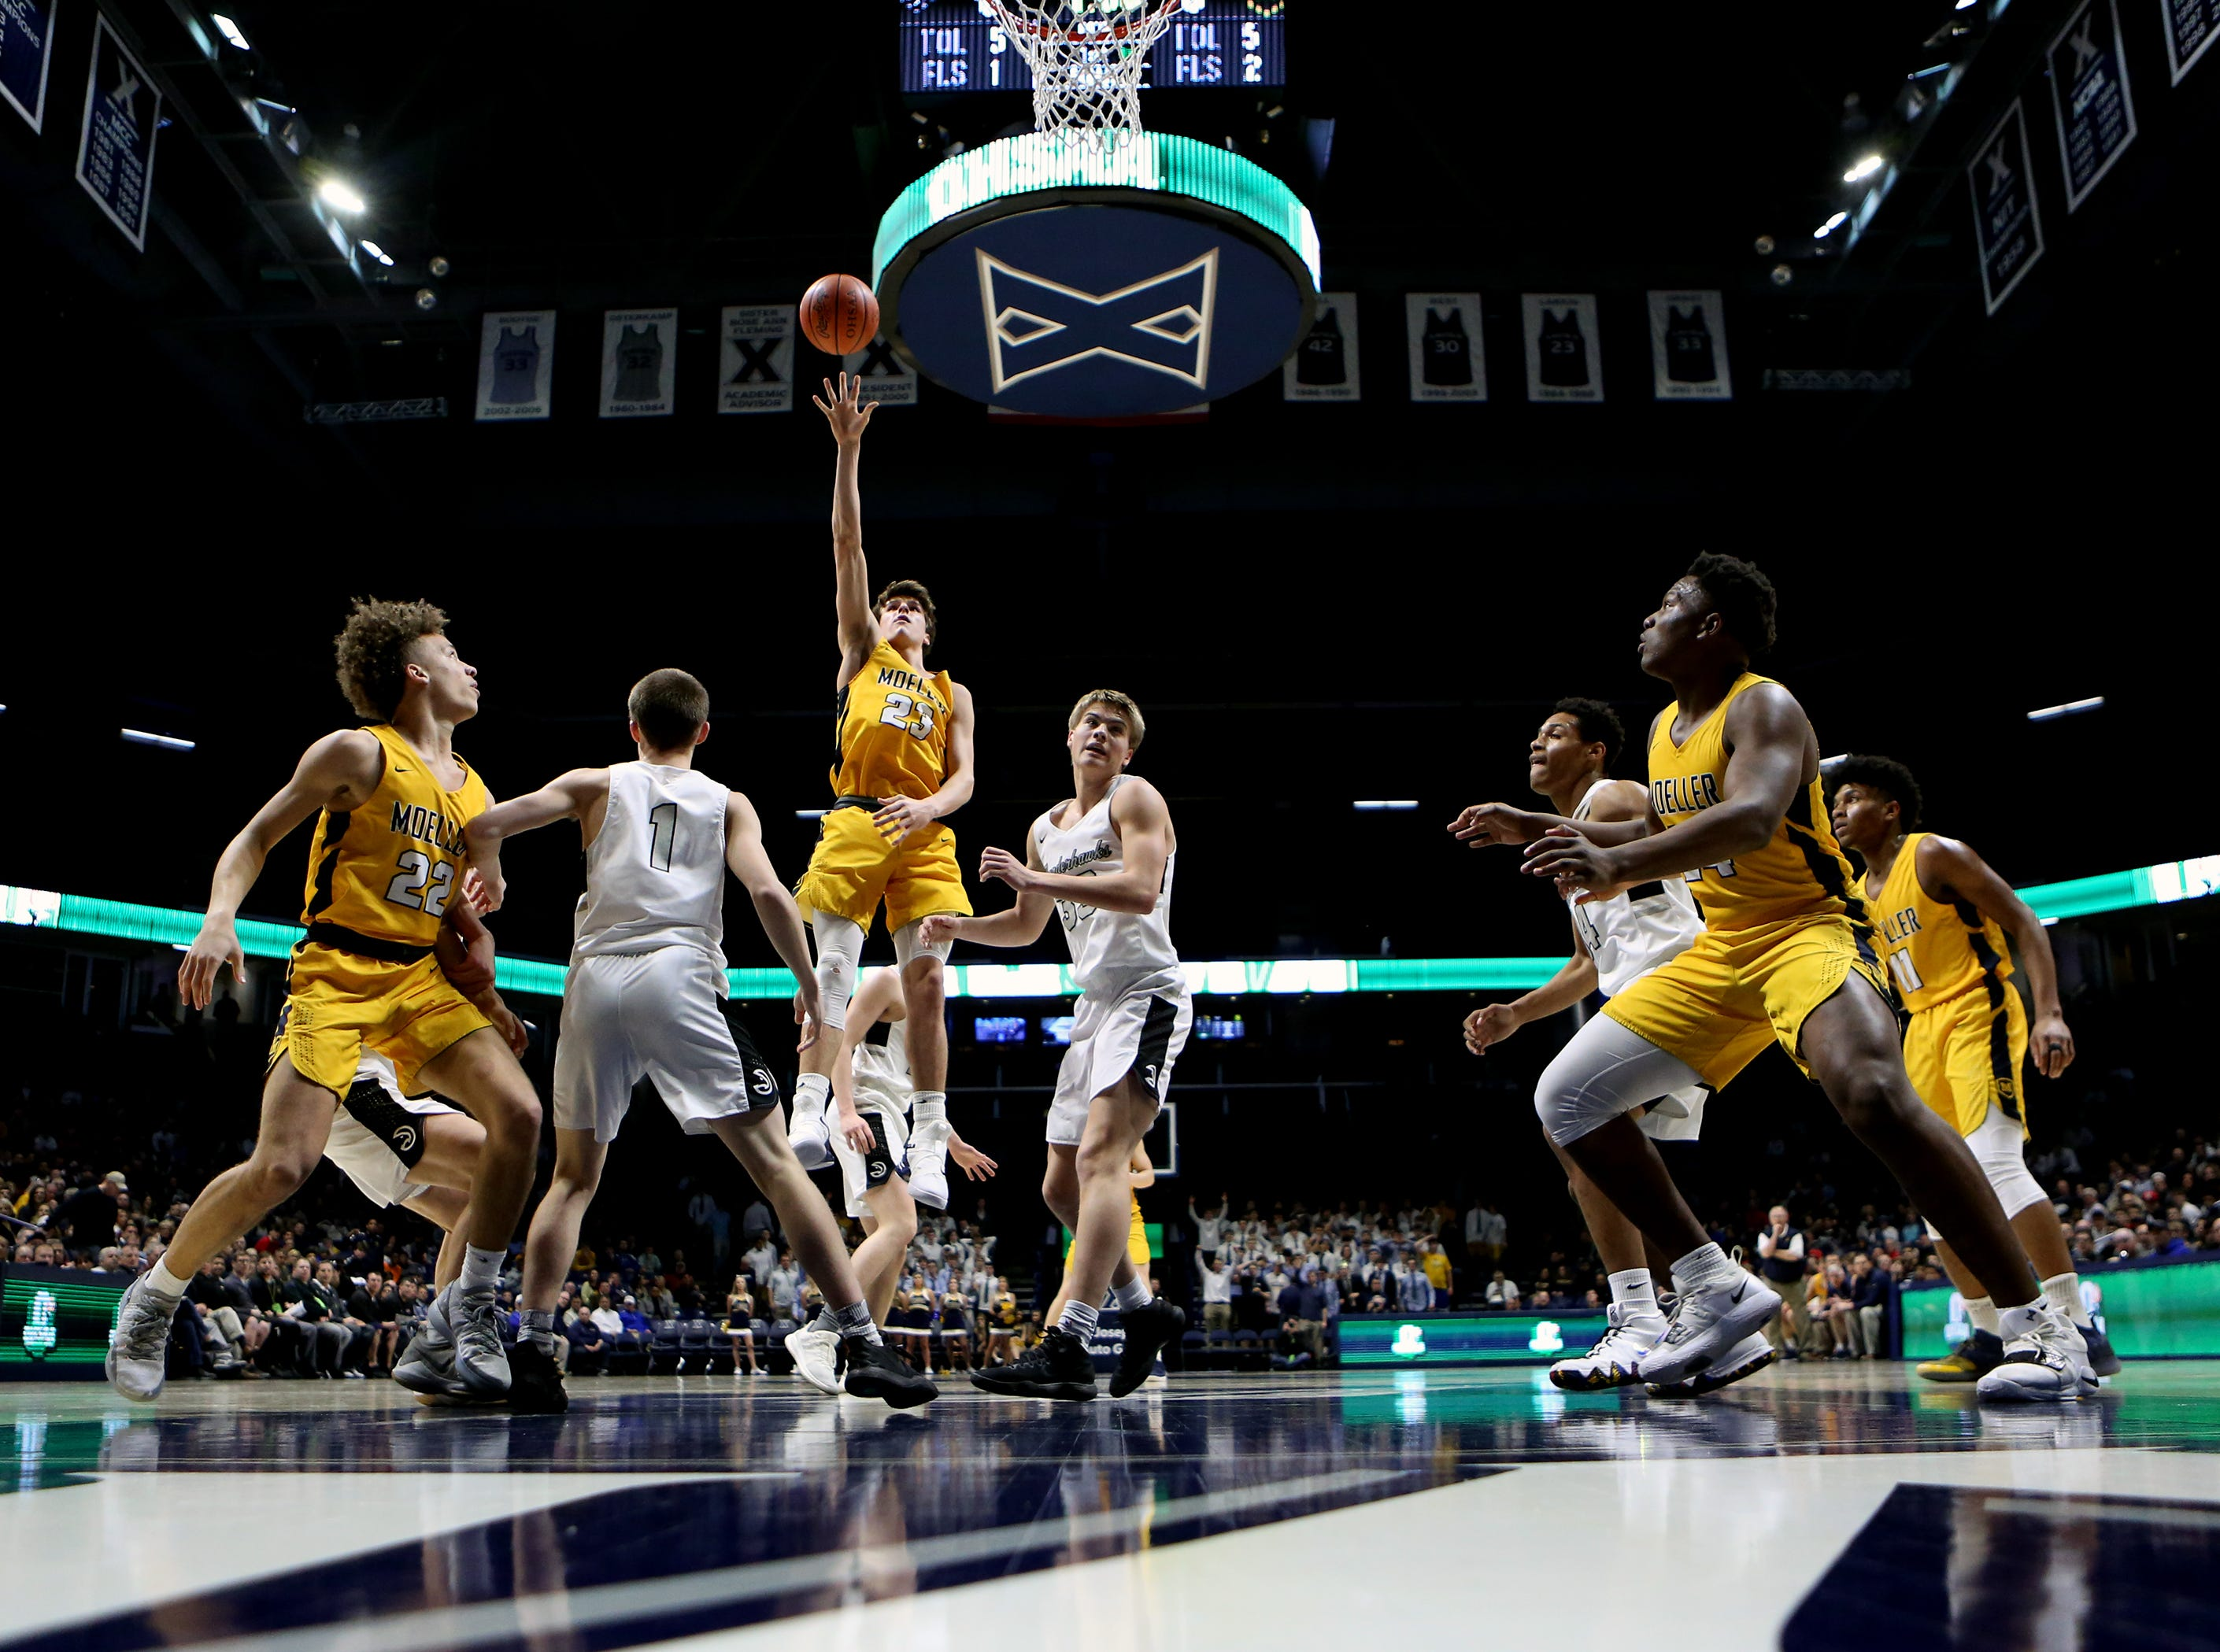 Moeller forward Will McCracken shoots and scores in the second half of the boys regional semifinal March 13, 2019, at Xavier University's Cintas Center. Moeller defeated Lakota East 47-33.